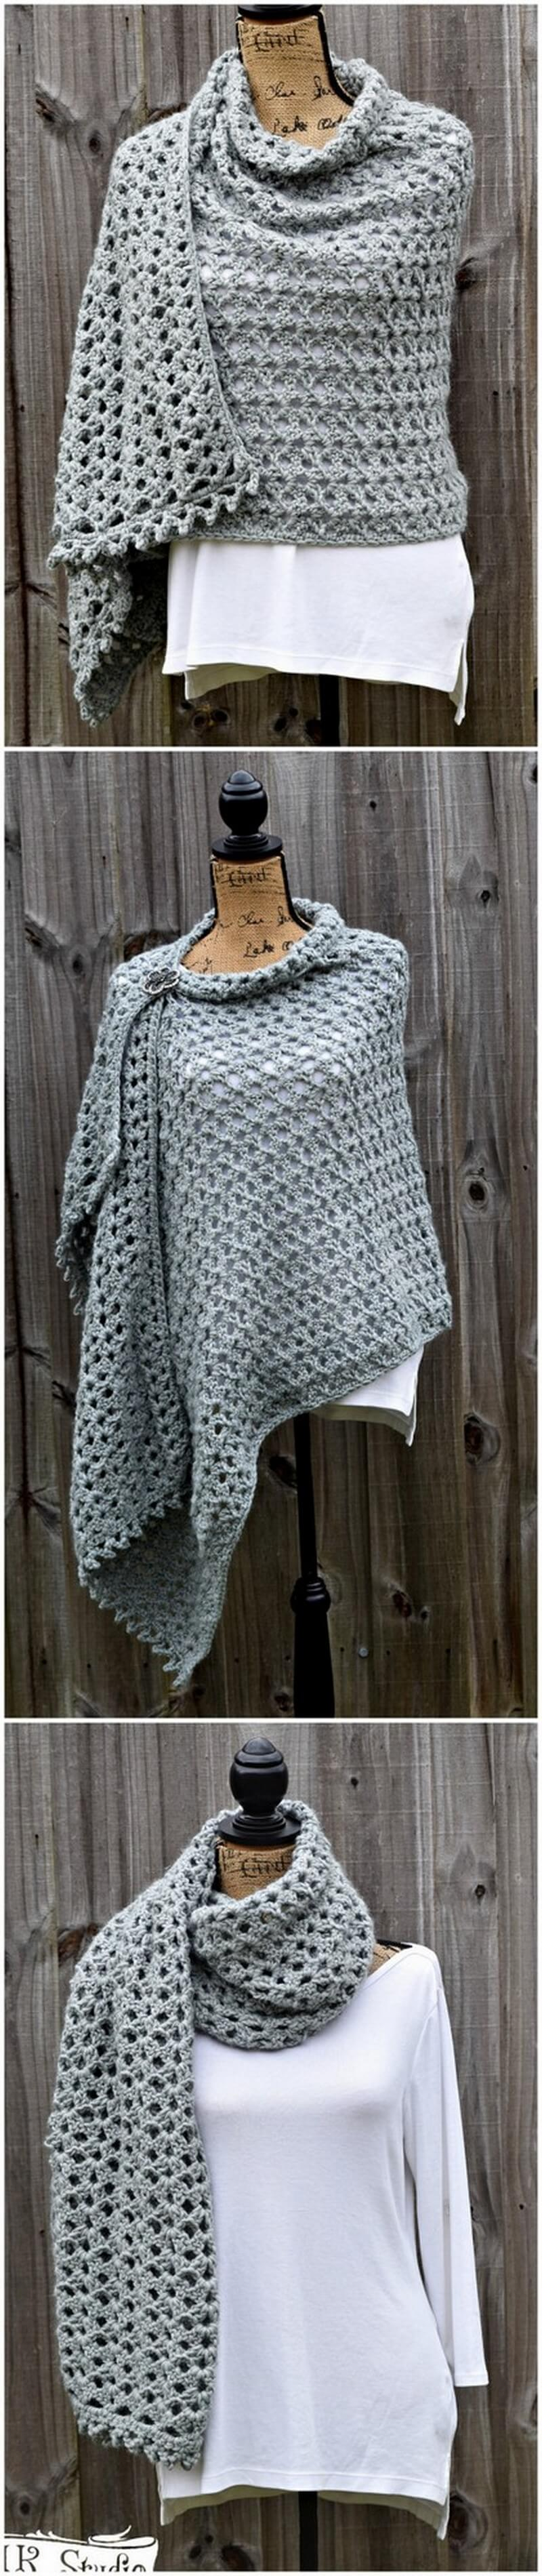 Crochet Shawl Pattern (8)